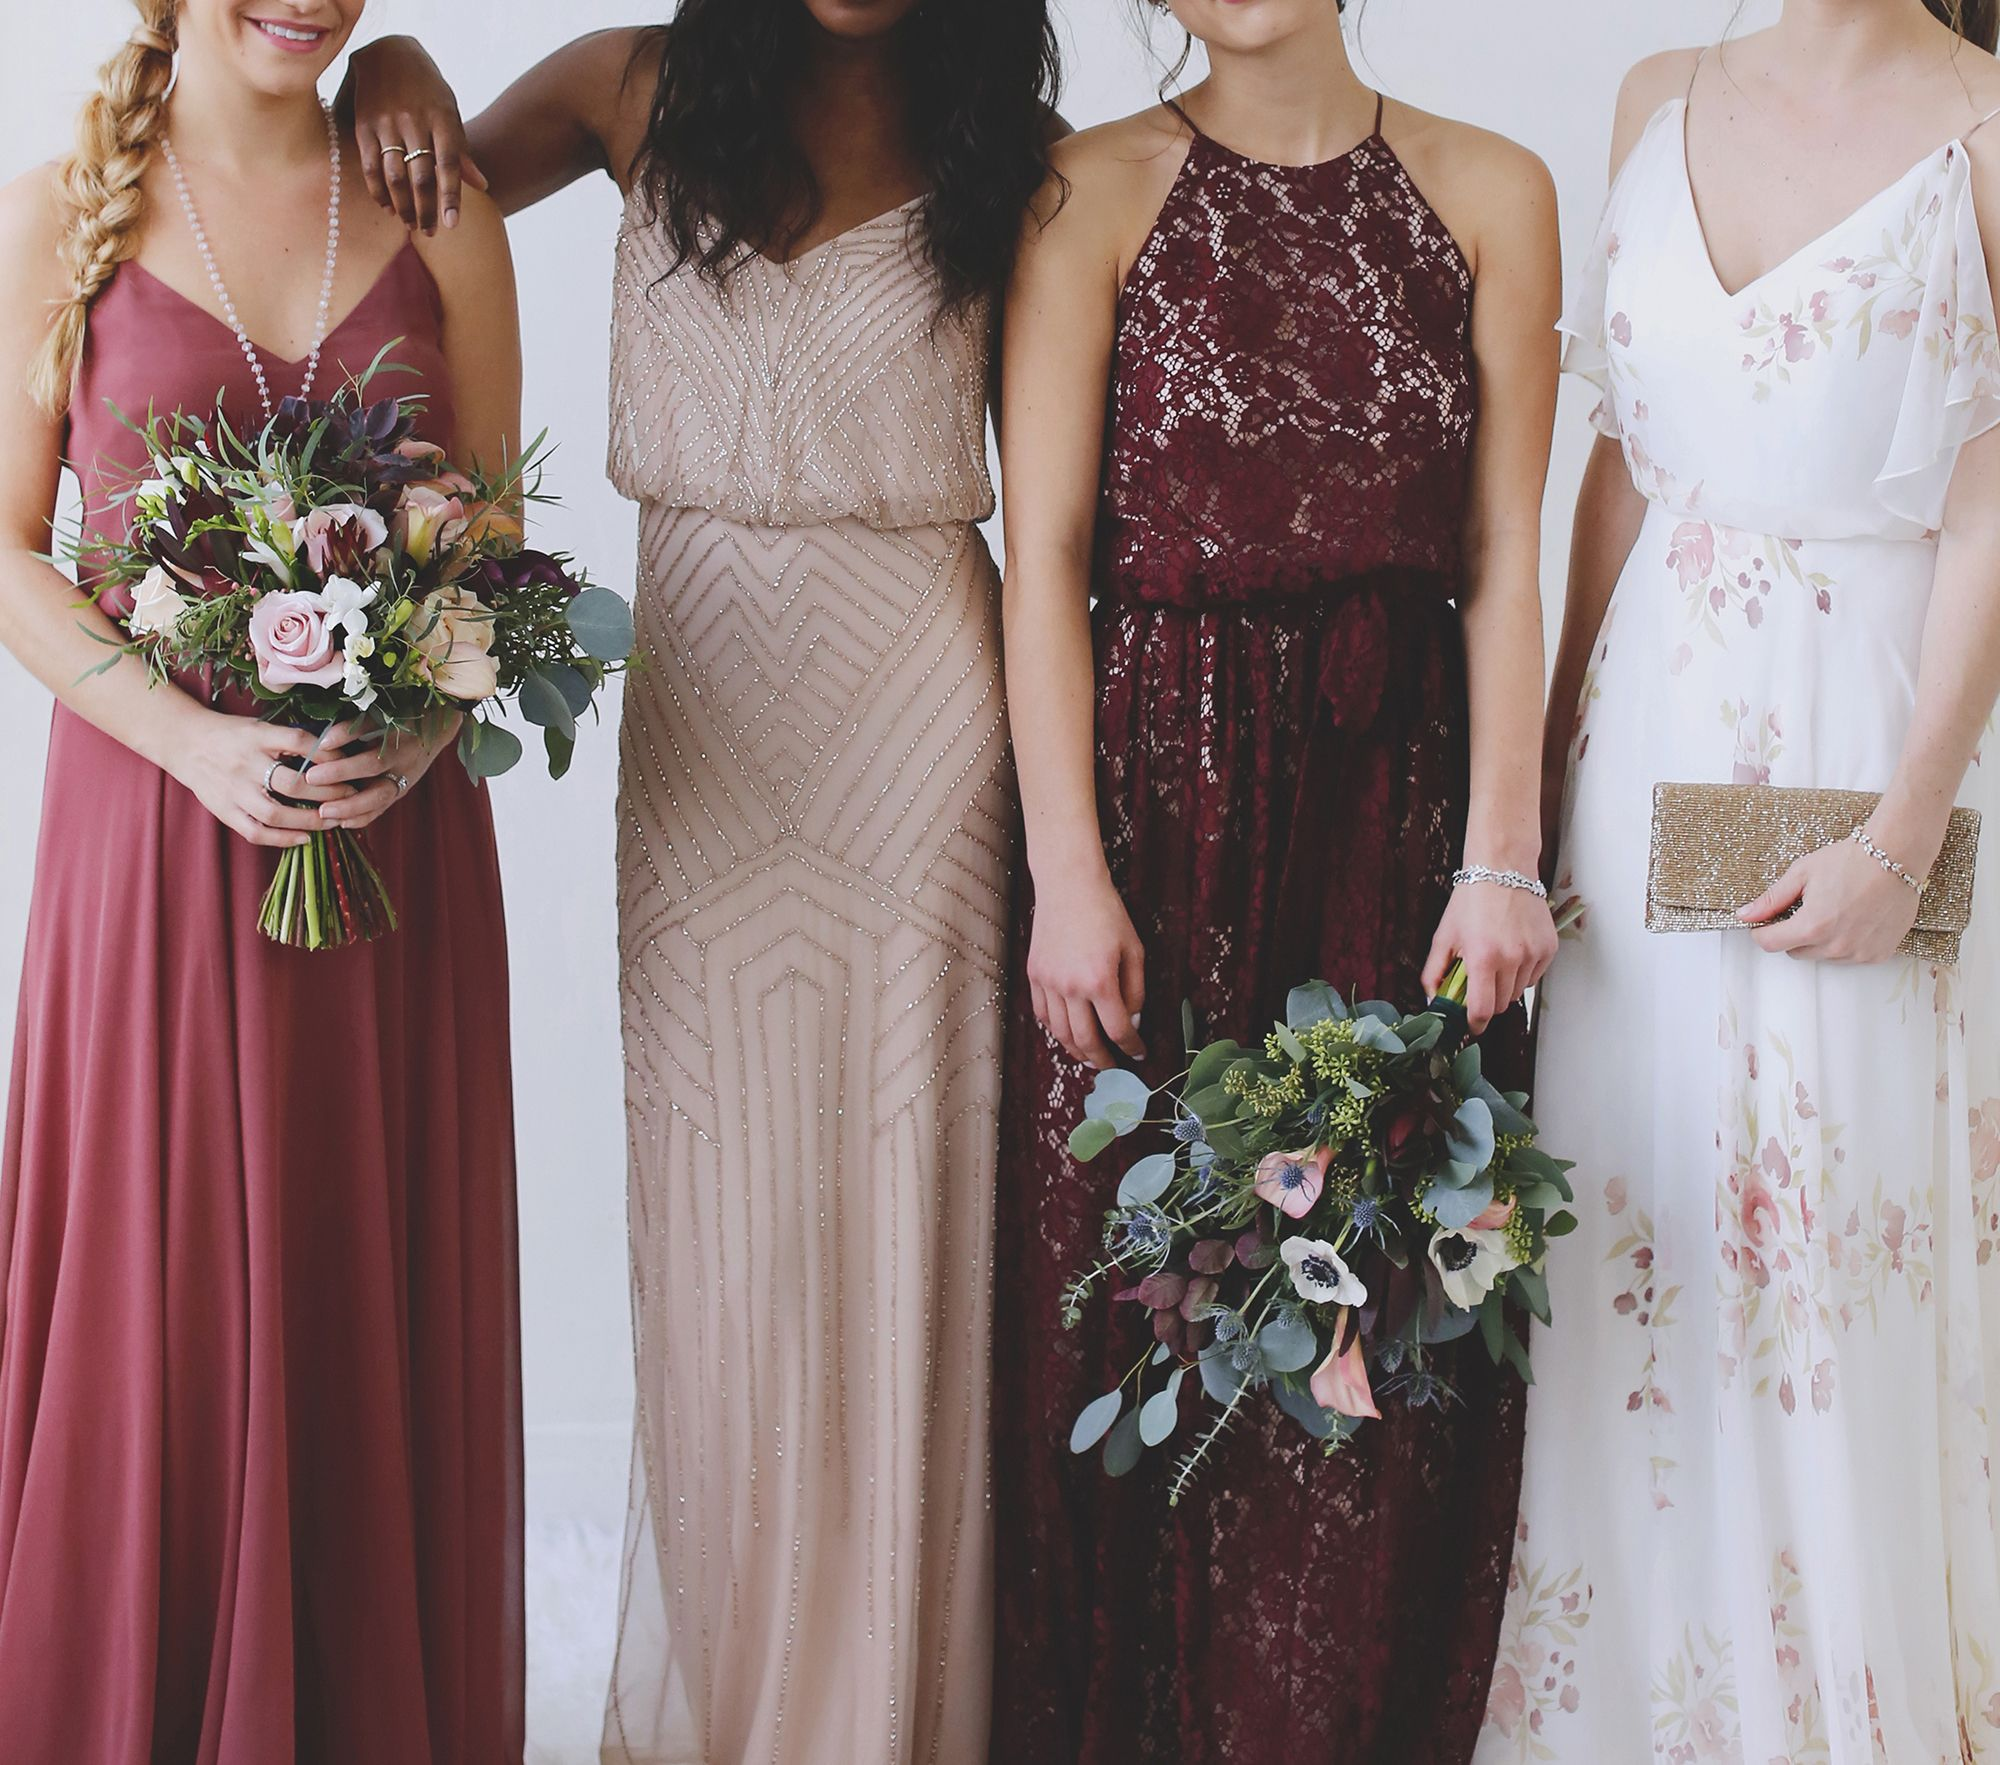 Pick n mix your bridesmaid dresses the mix match wedding trend pick n mix your bridesmaid dresses the mix match wedding trend love those colors too my wedding ideas pinterest mix match wedding trends and mix ombrellifo Gallery